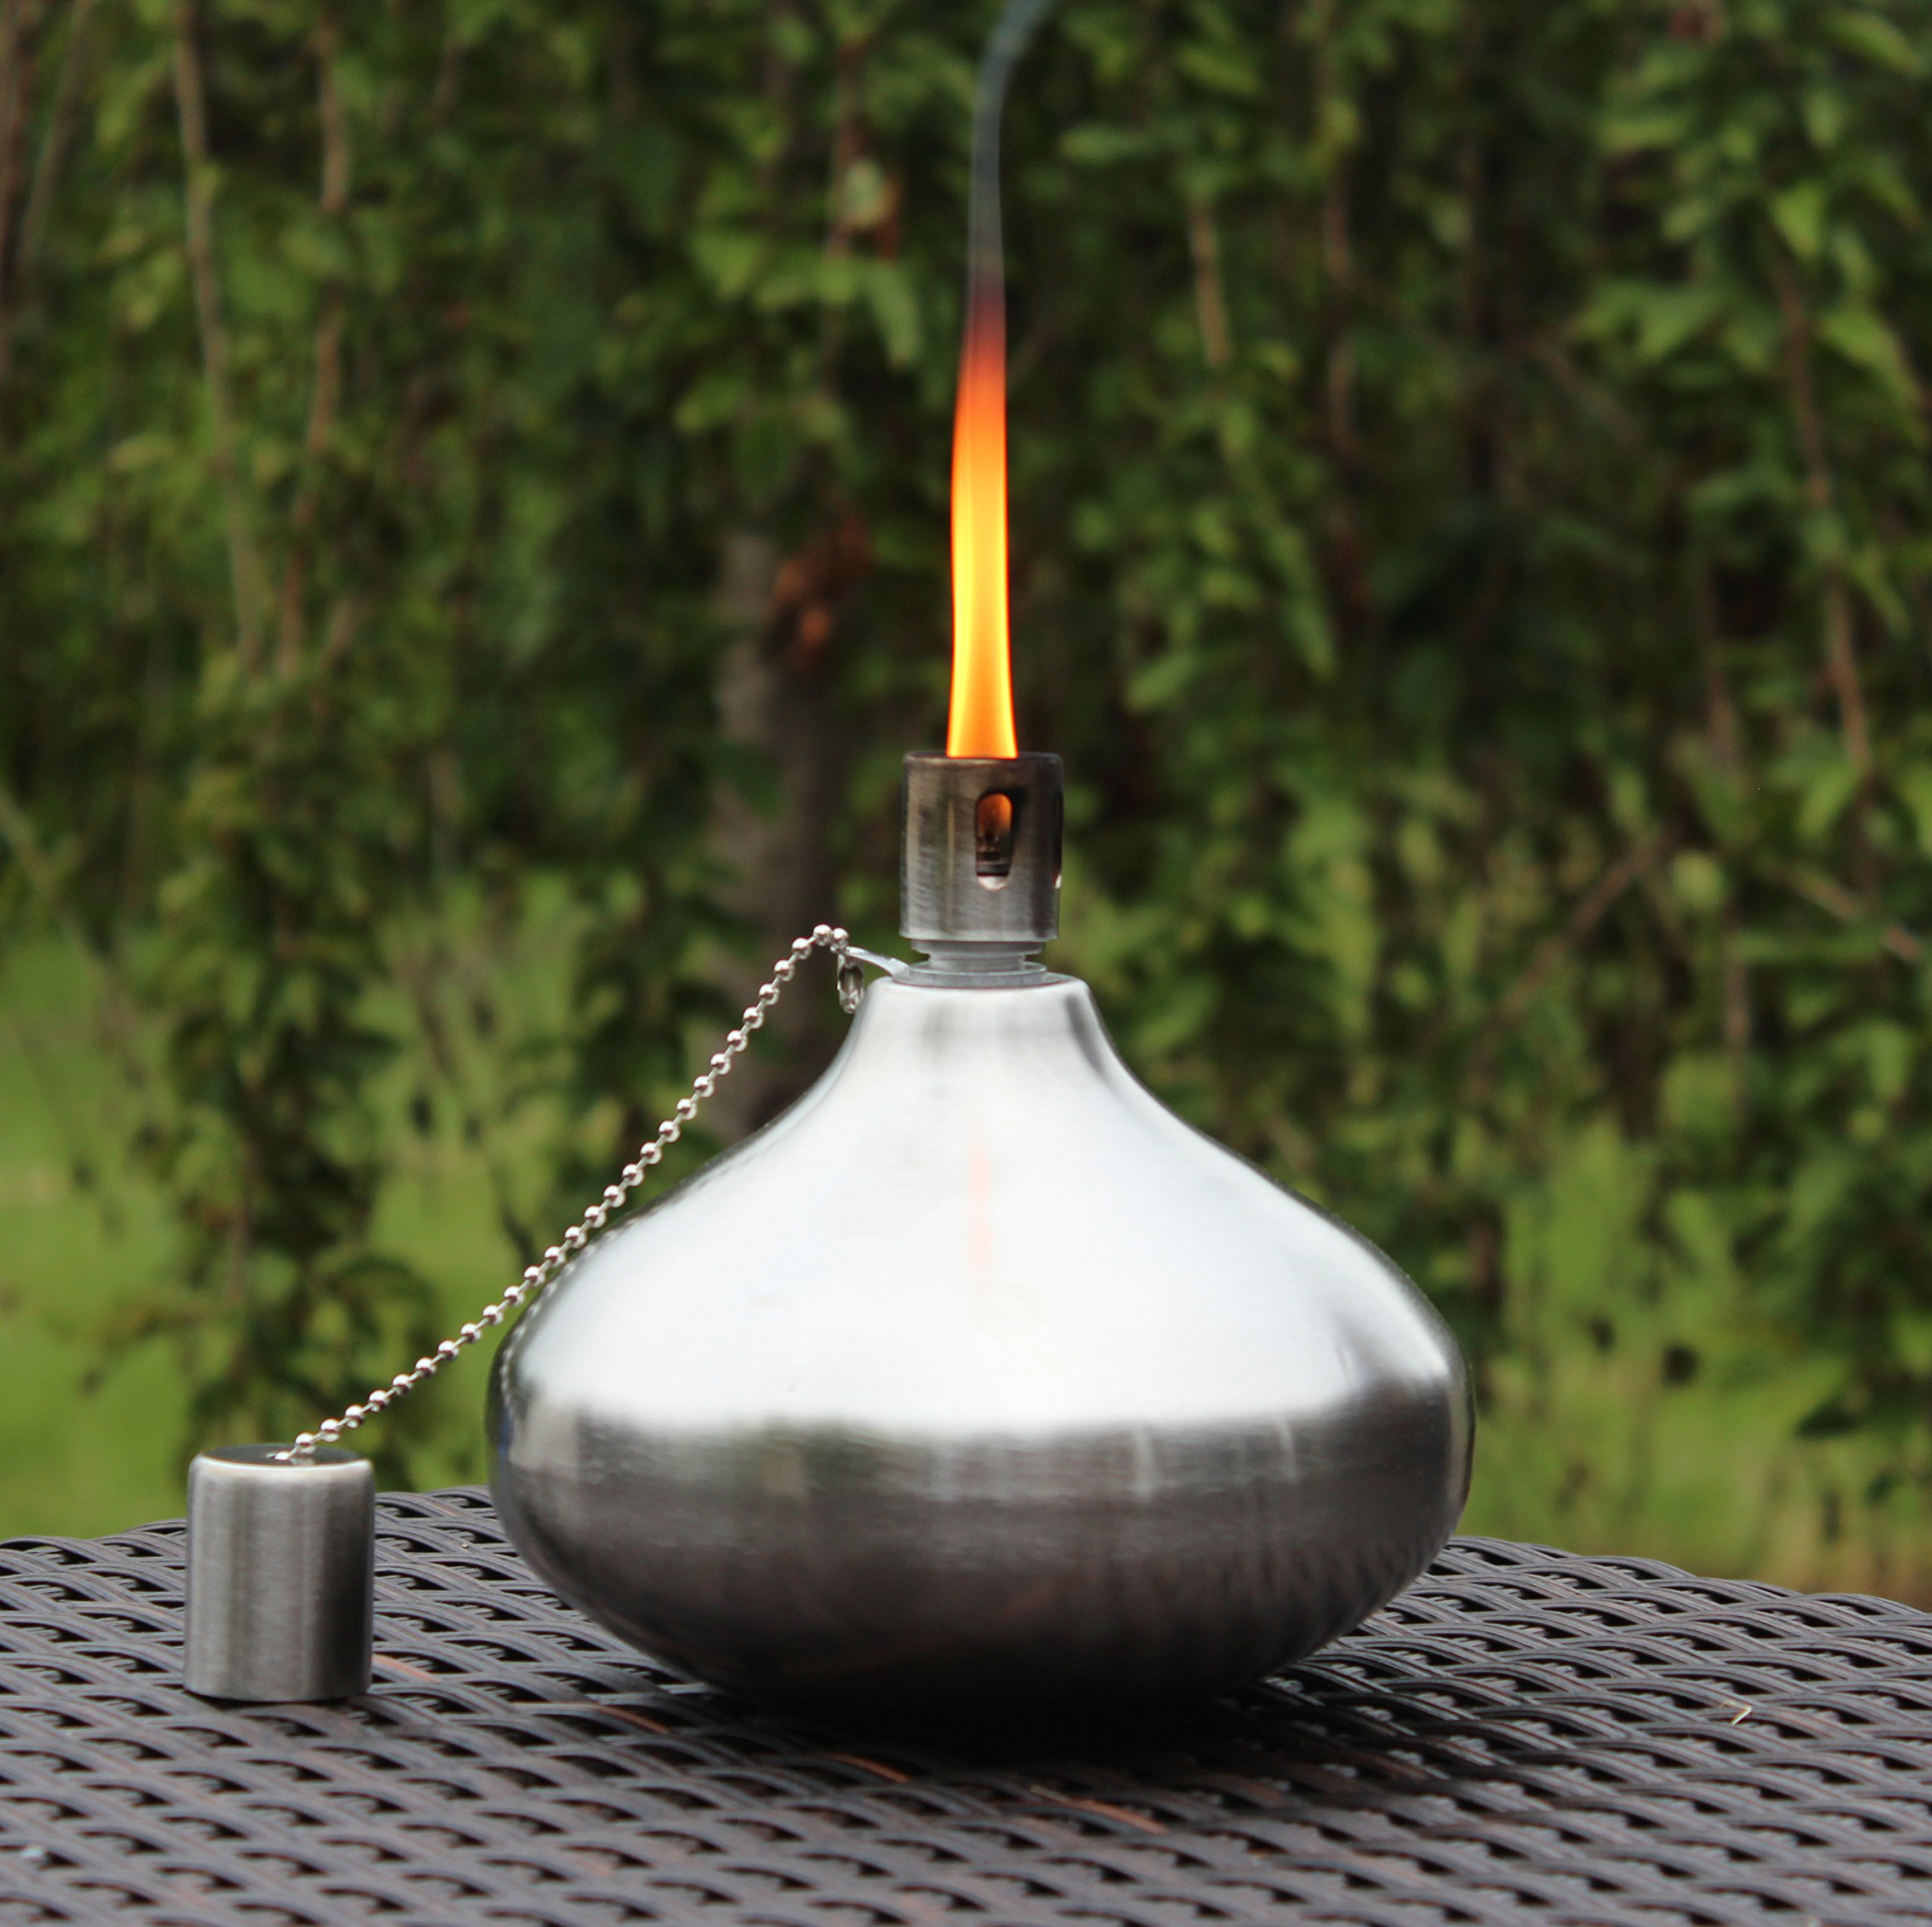 Seraphic Tiki Torch for Patio Table or Backyard, Stainless Steel with Fiberglass Wick